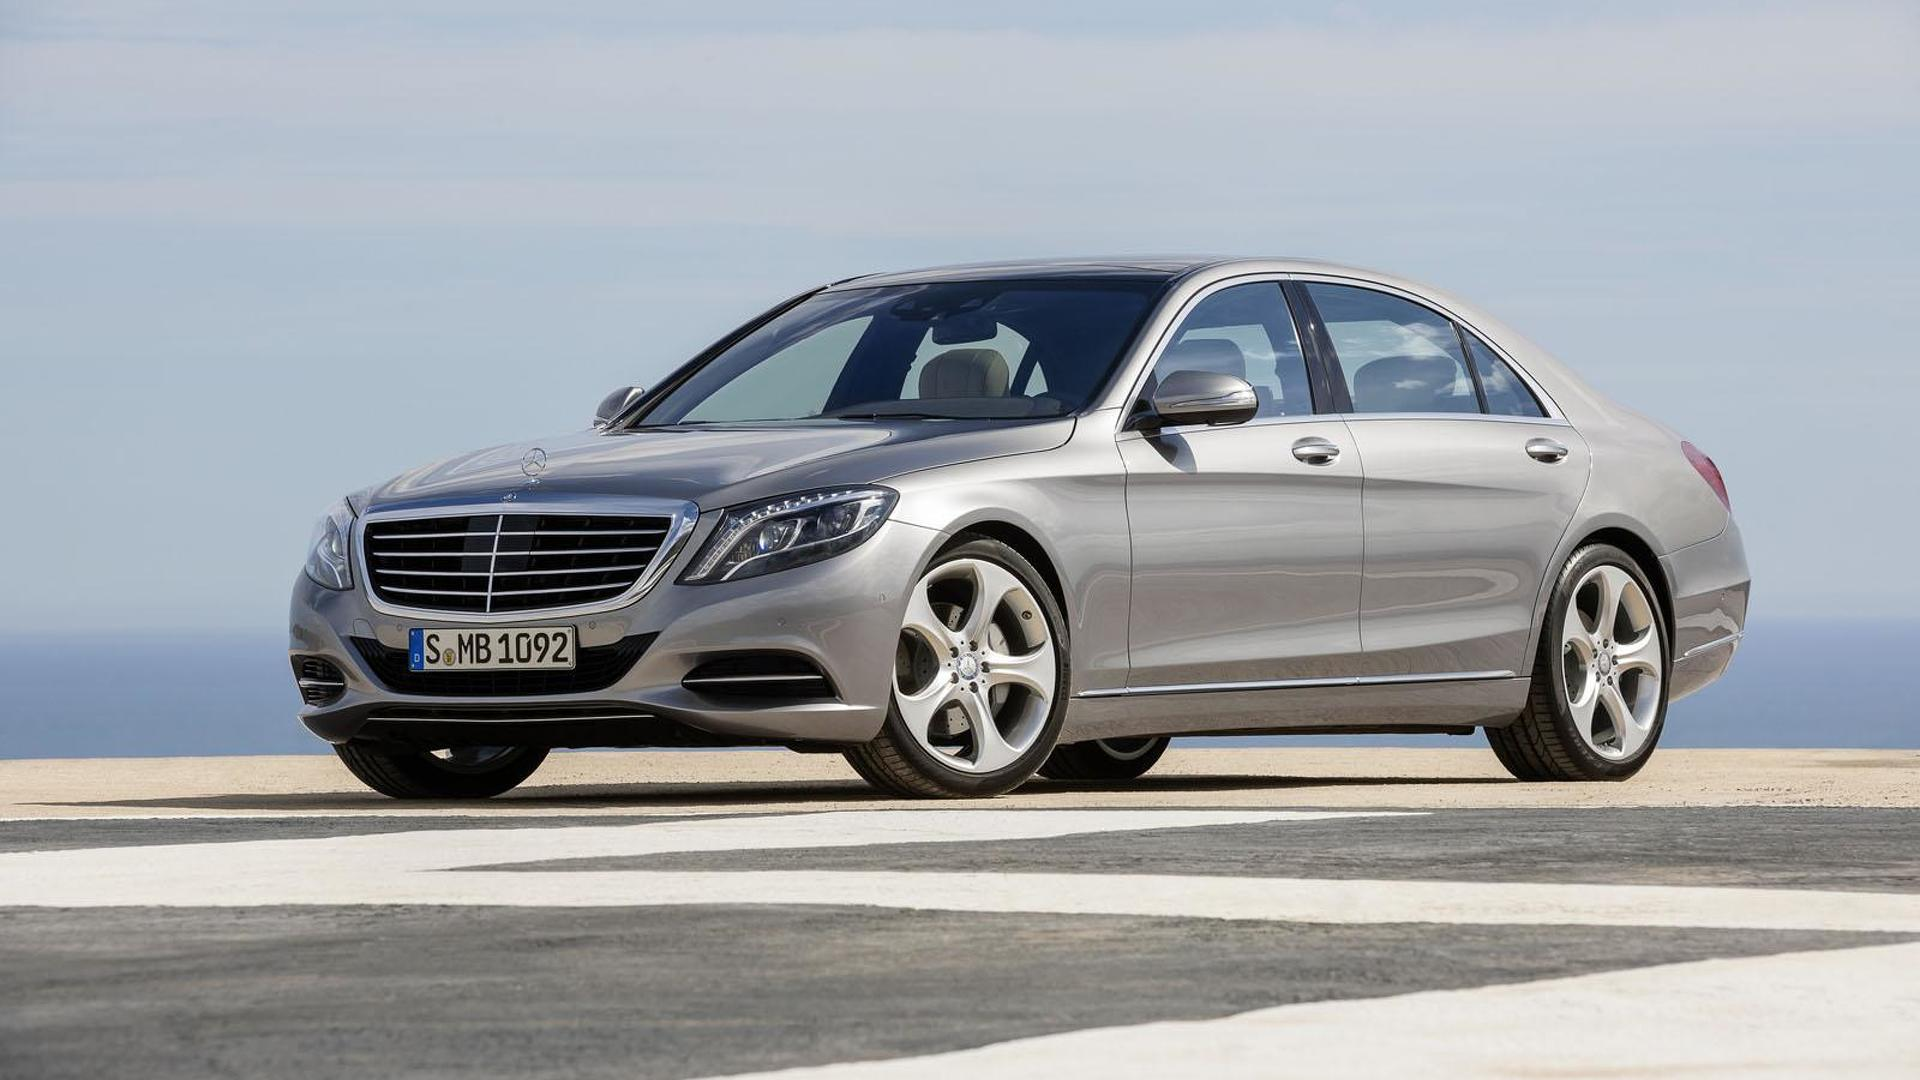 Mercedes-Benz S-Class Pullman arriving in May 2014 - report